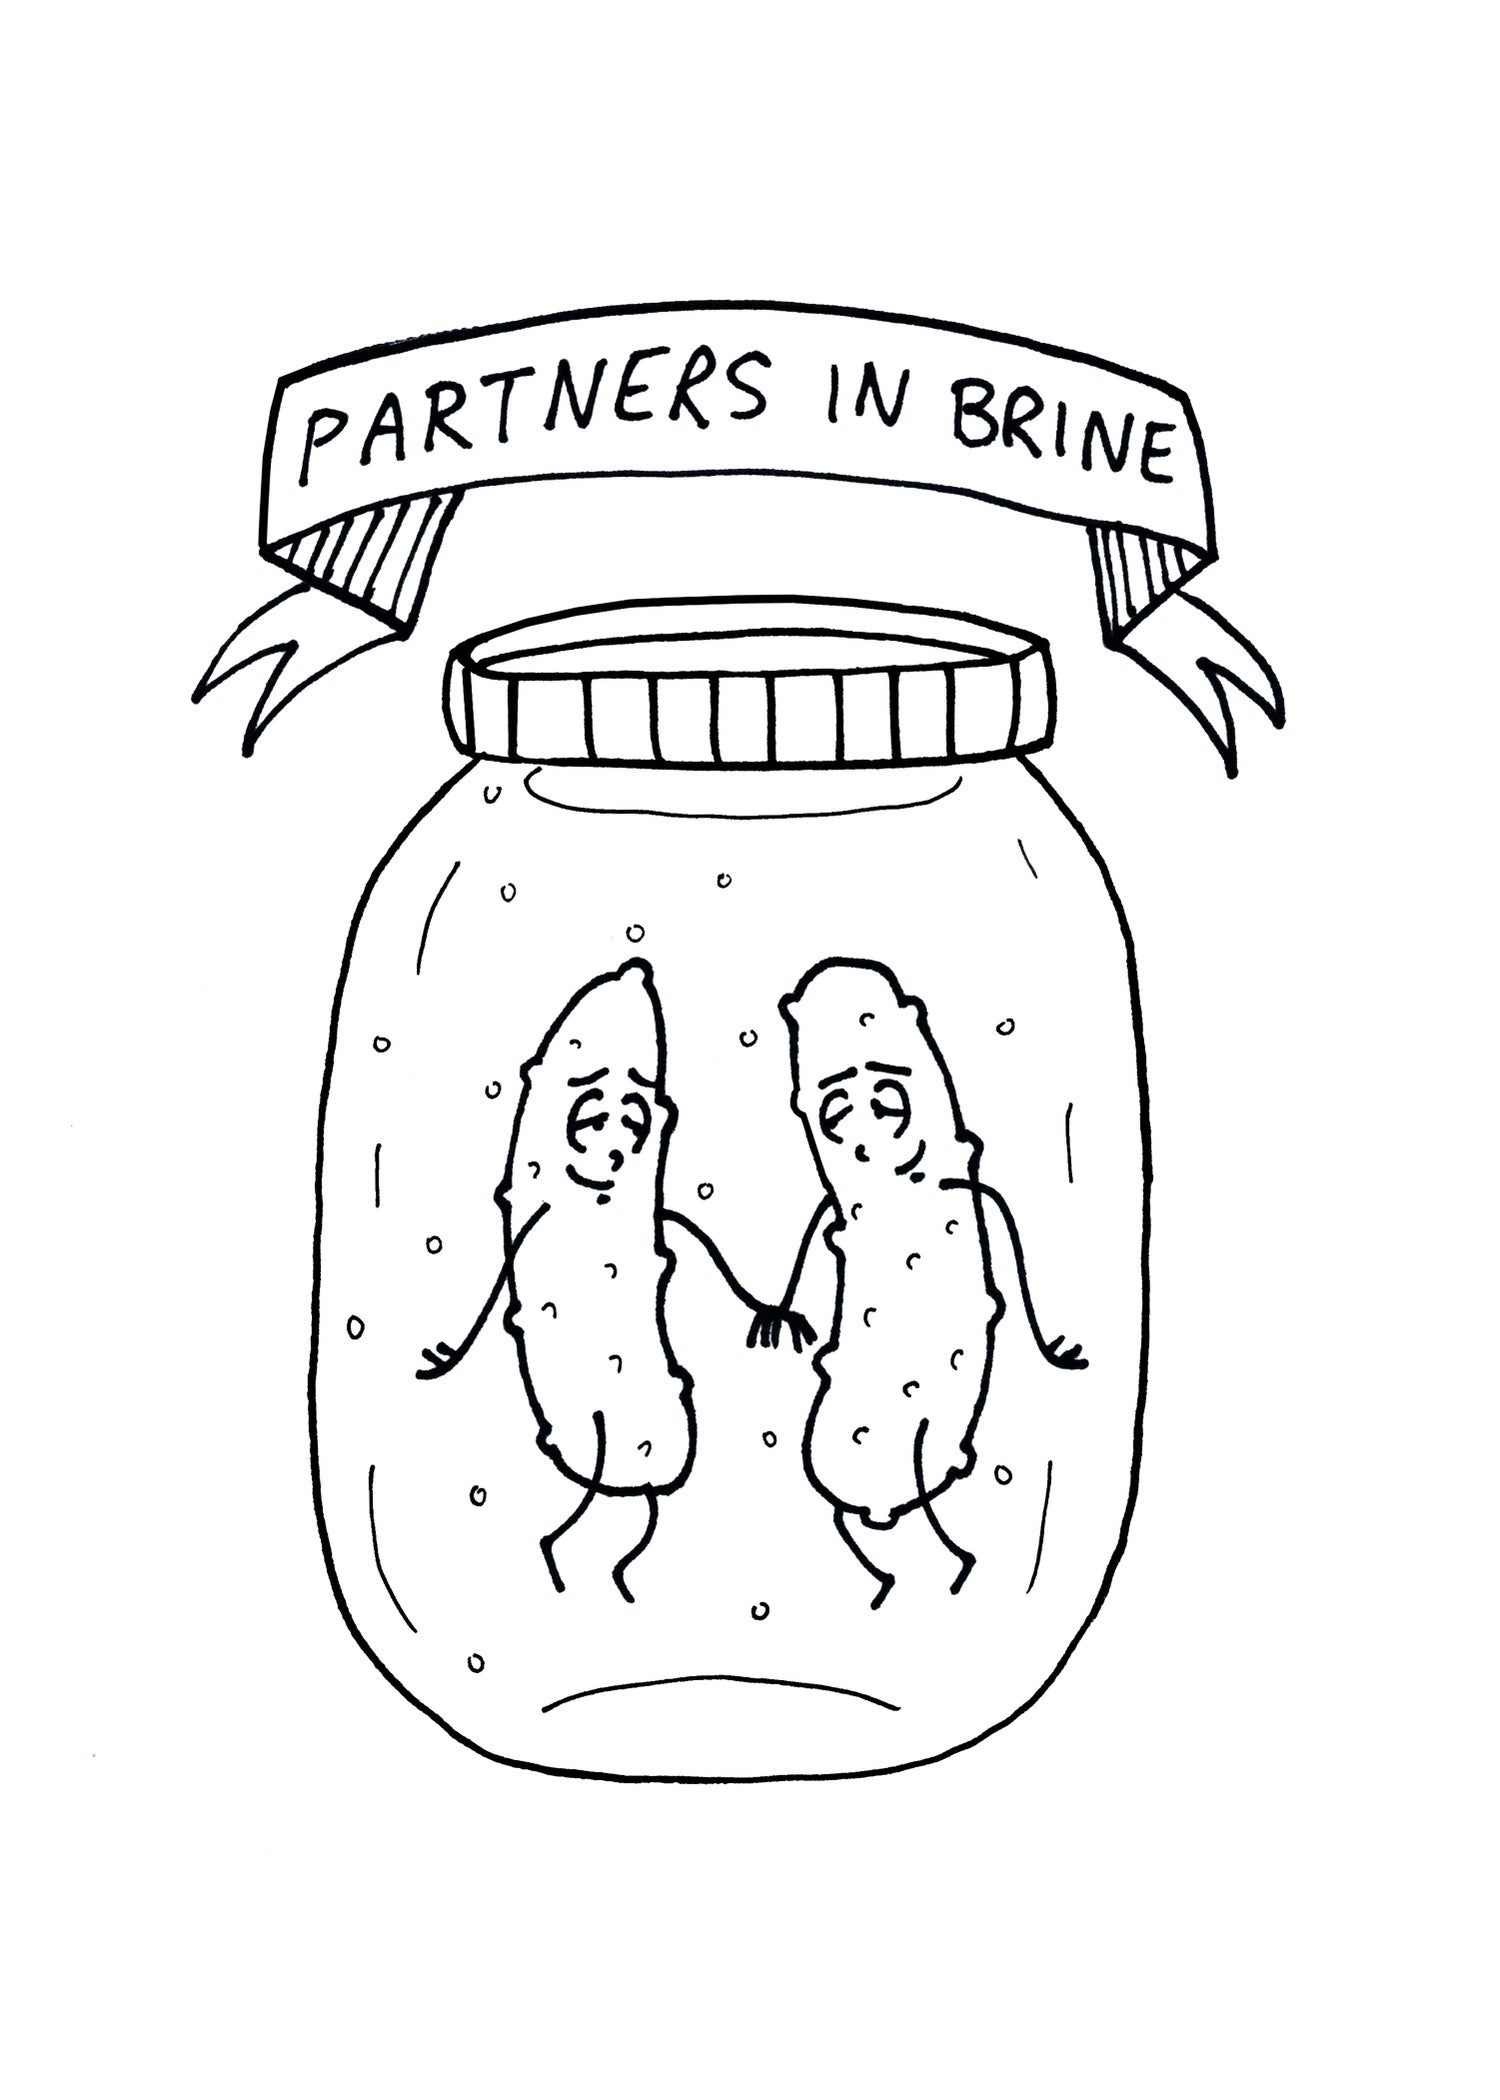 Image of Partners in Brine - small print